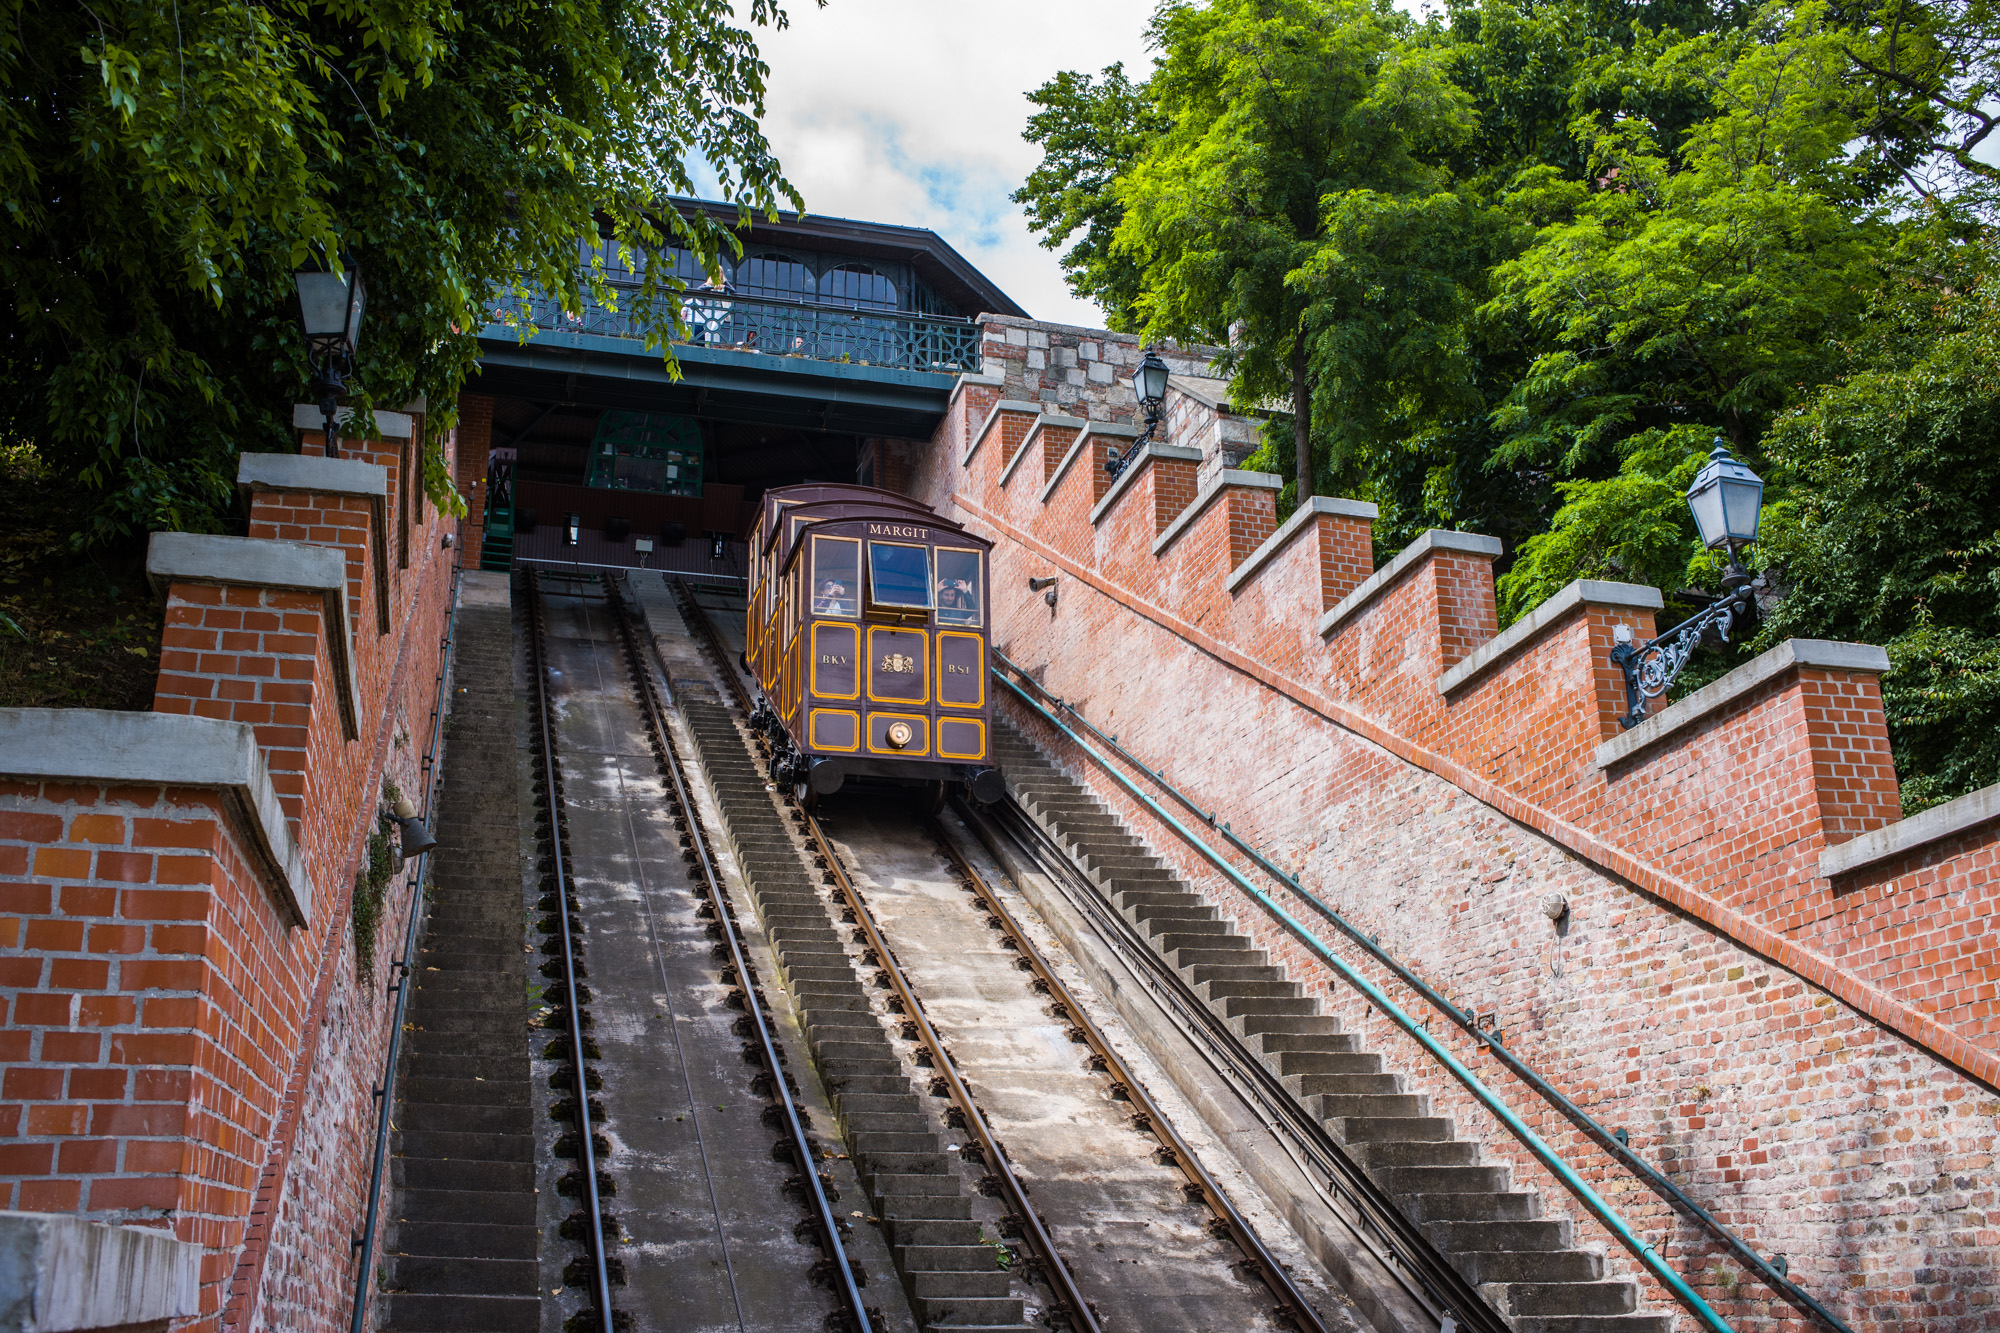 The Funicular to the top of Castle Hill - built in 1870